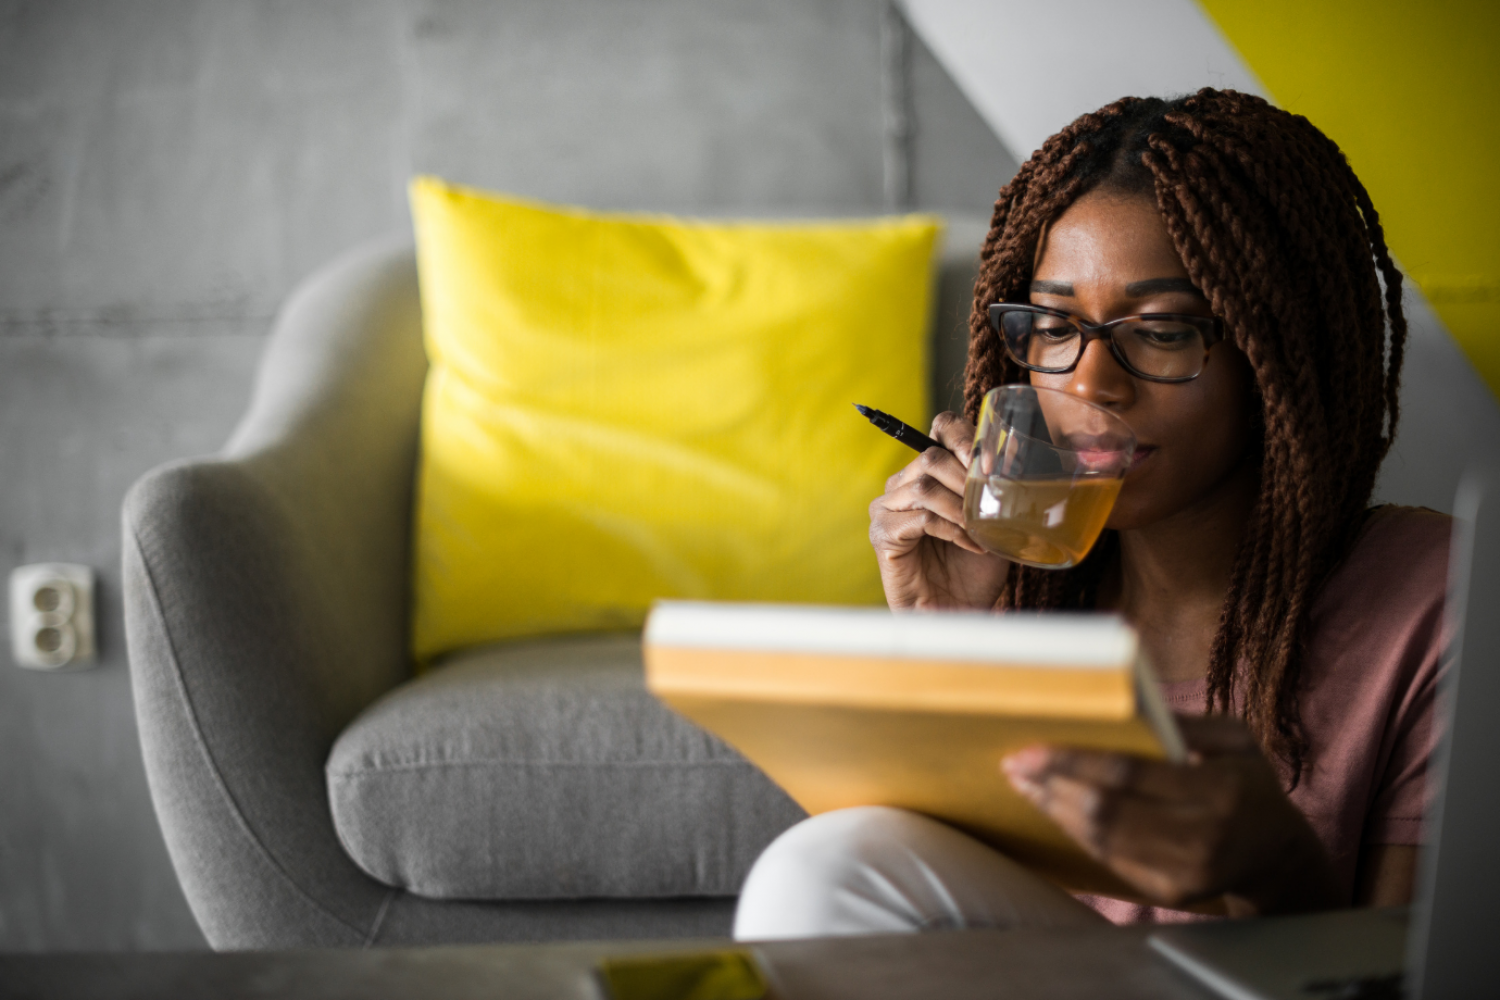 A woman sits in front of a grey seat sipping tea while contemplating her writing on the notebook in front of her.